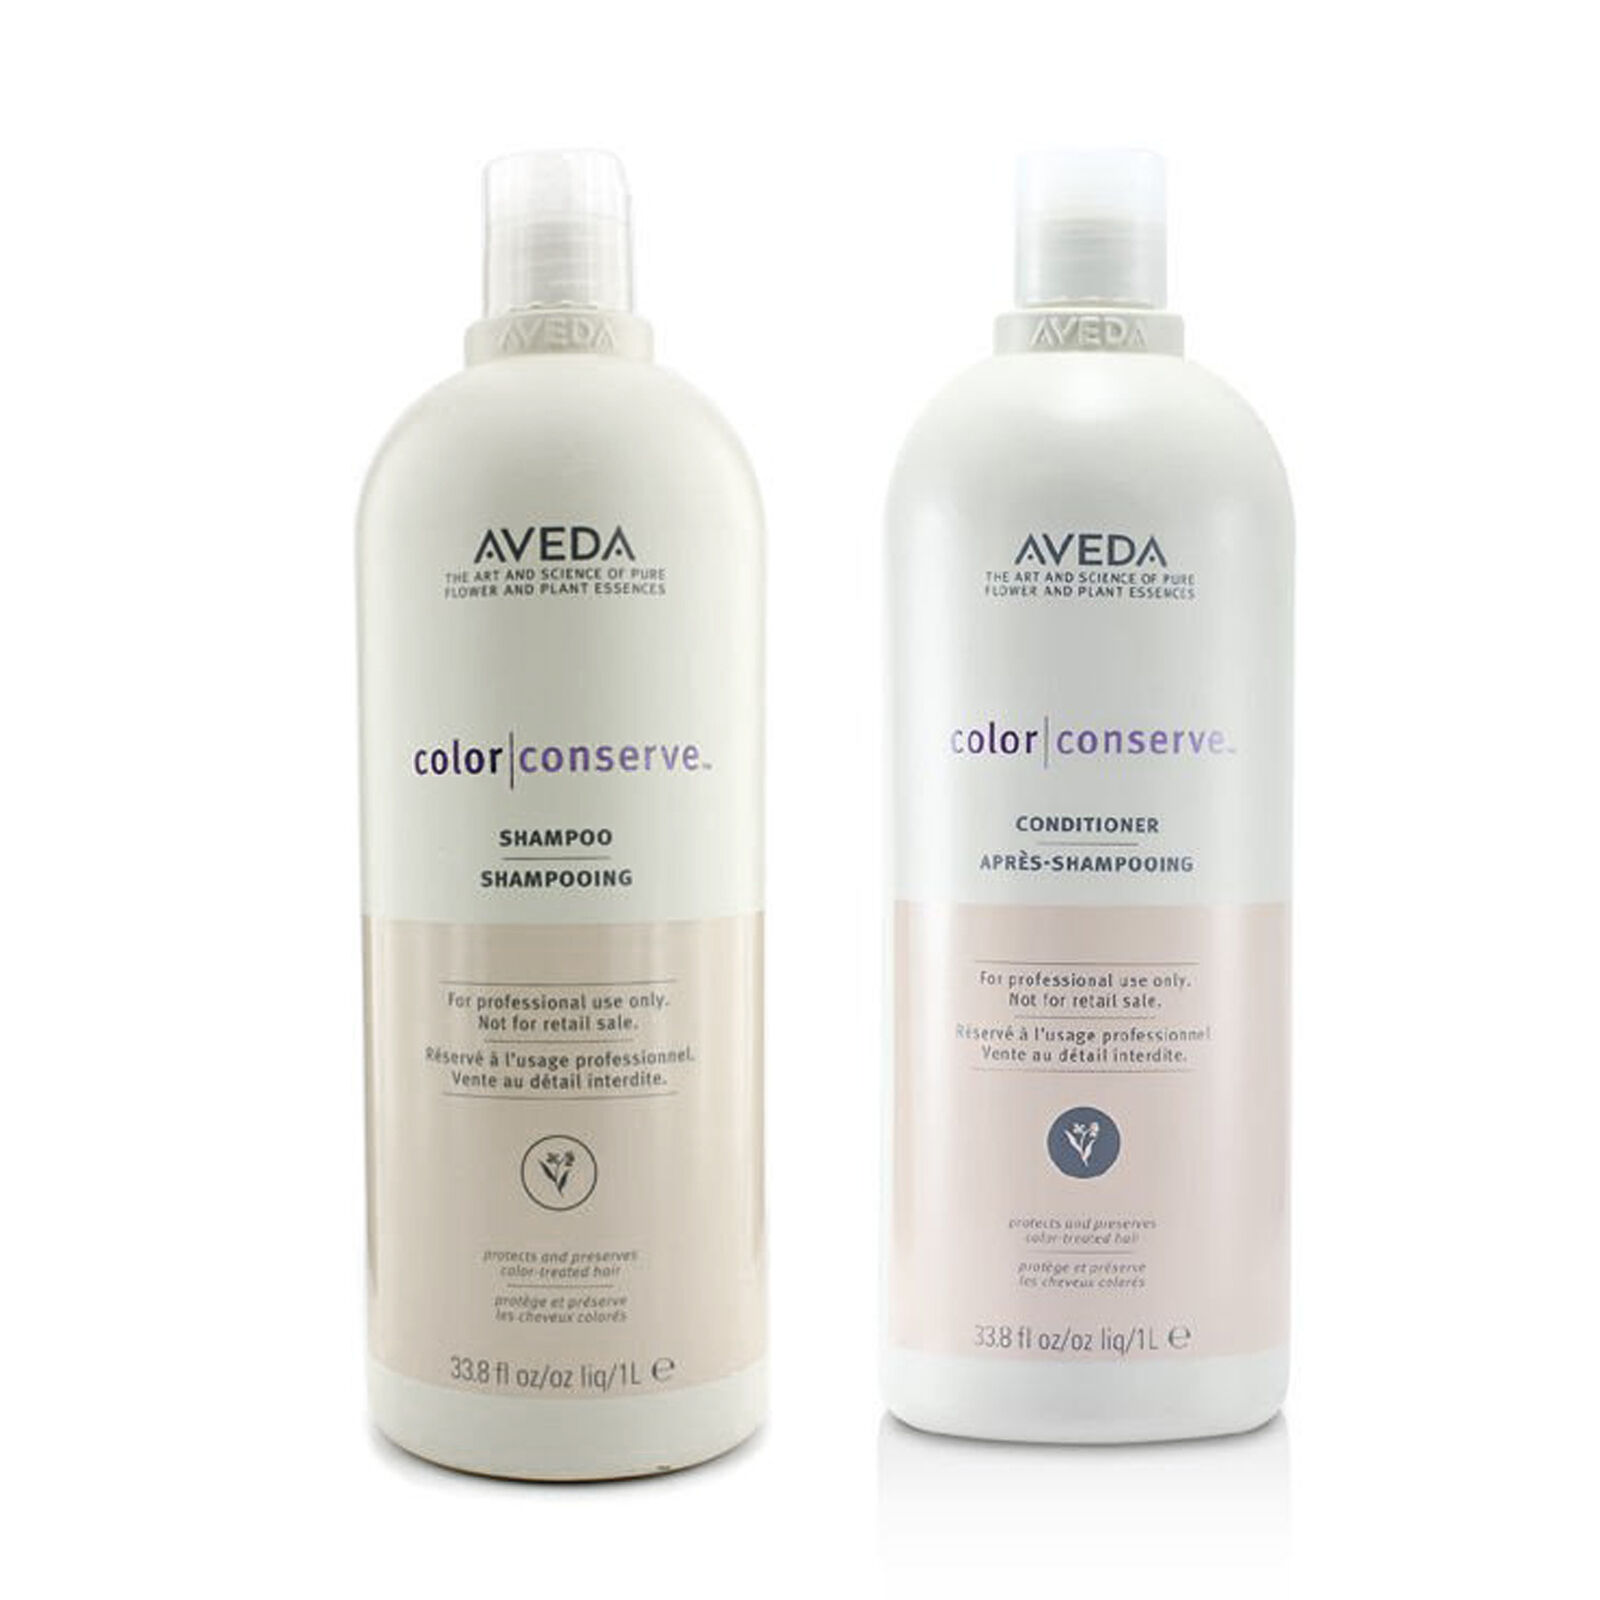 Aveda Color Conserve Shampoo and Conditioner 33.8 oz / 1 lit